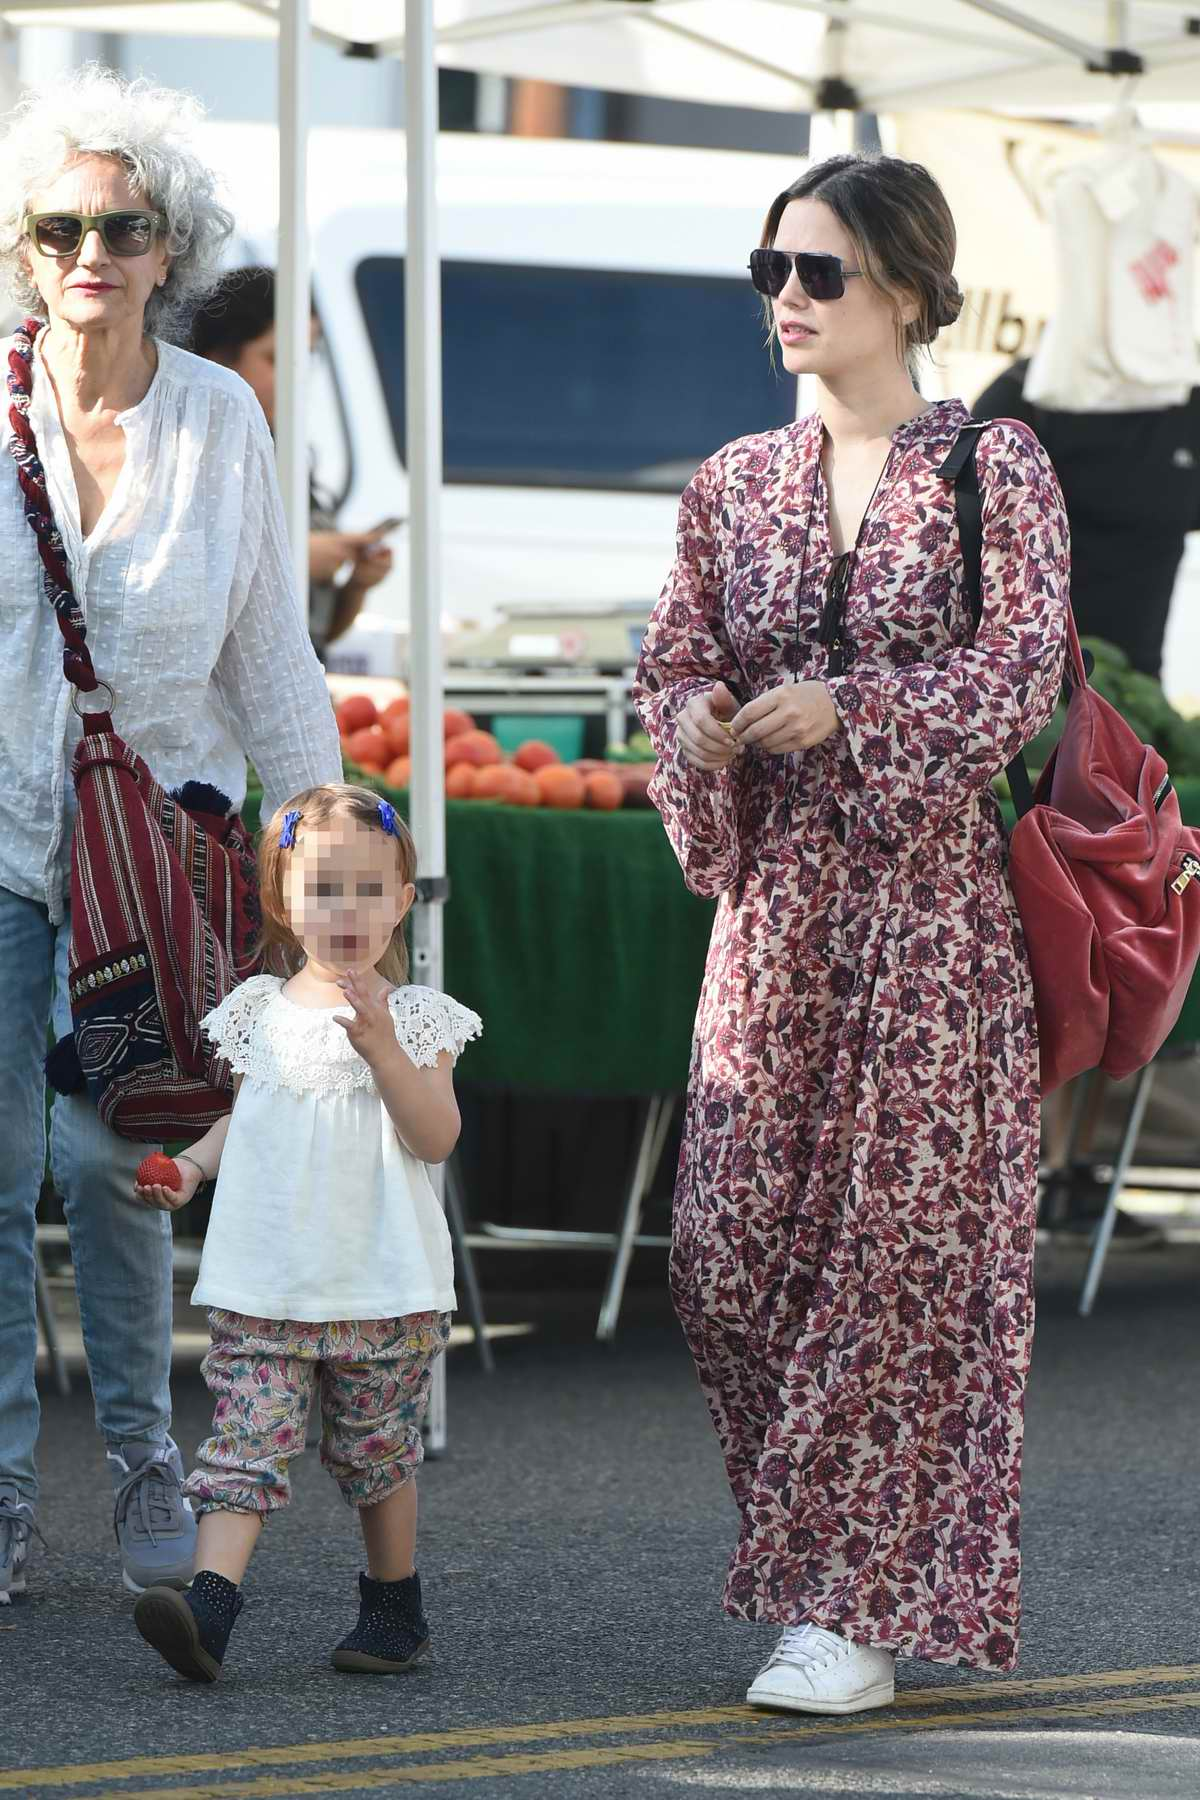 Rachel Bilson takes daughter out to farmers market in Studio City, Los Angeles